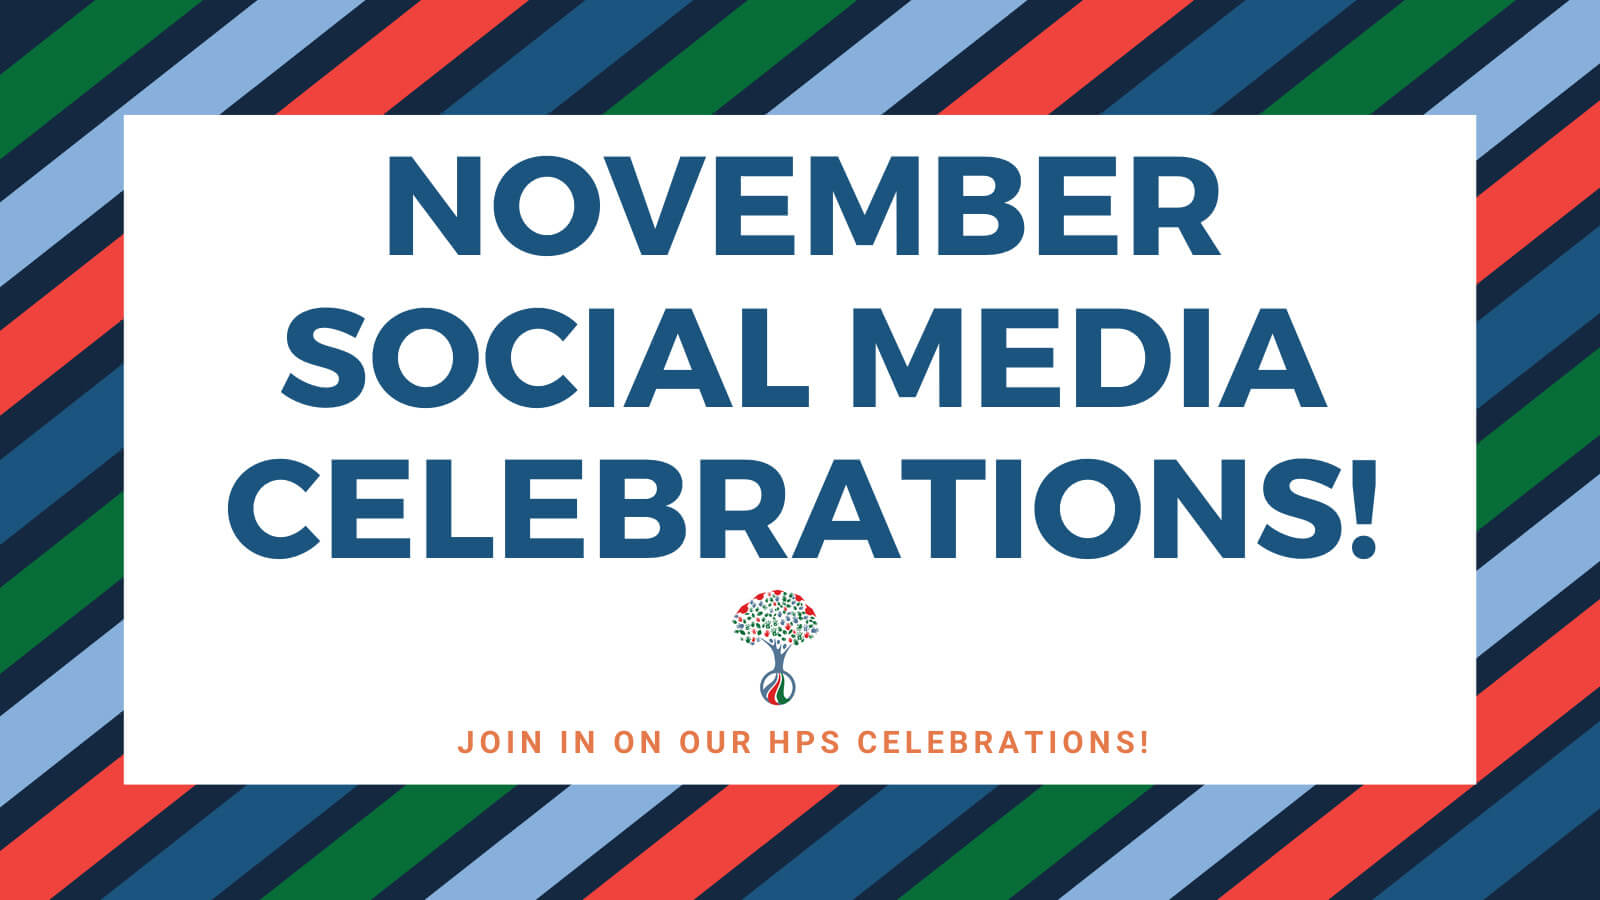 Join us in our November Social Media Celebrations!